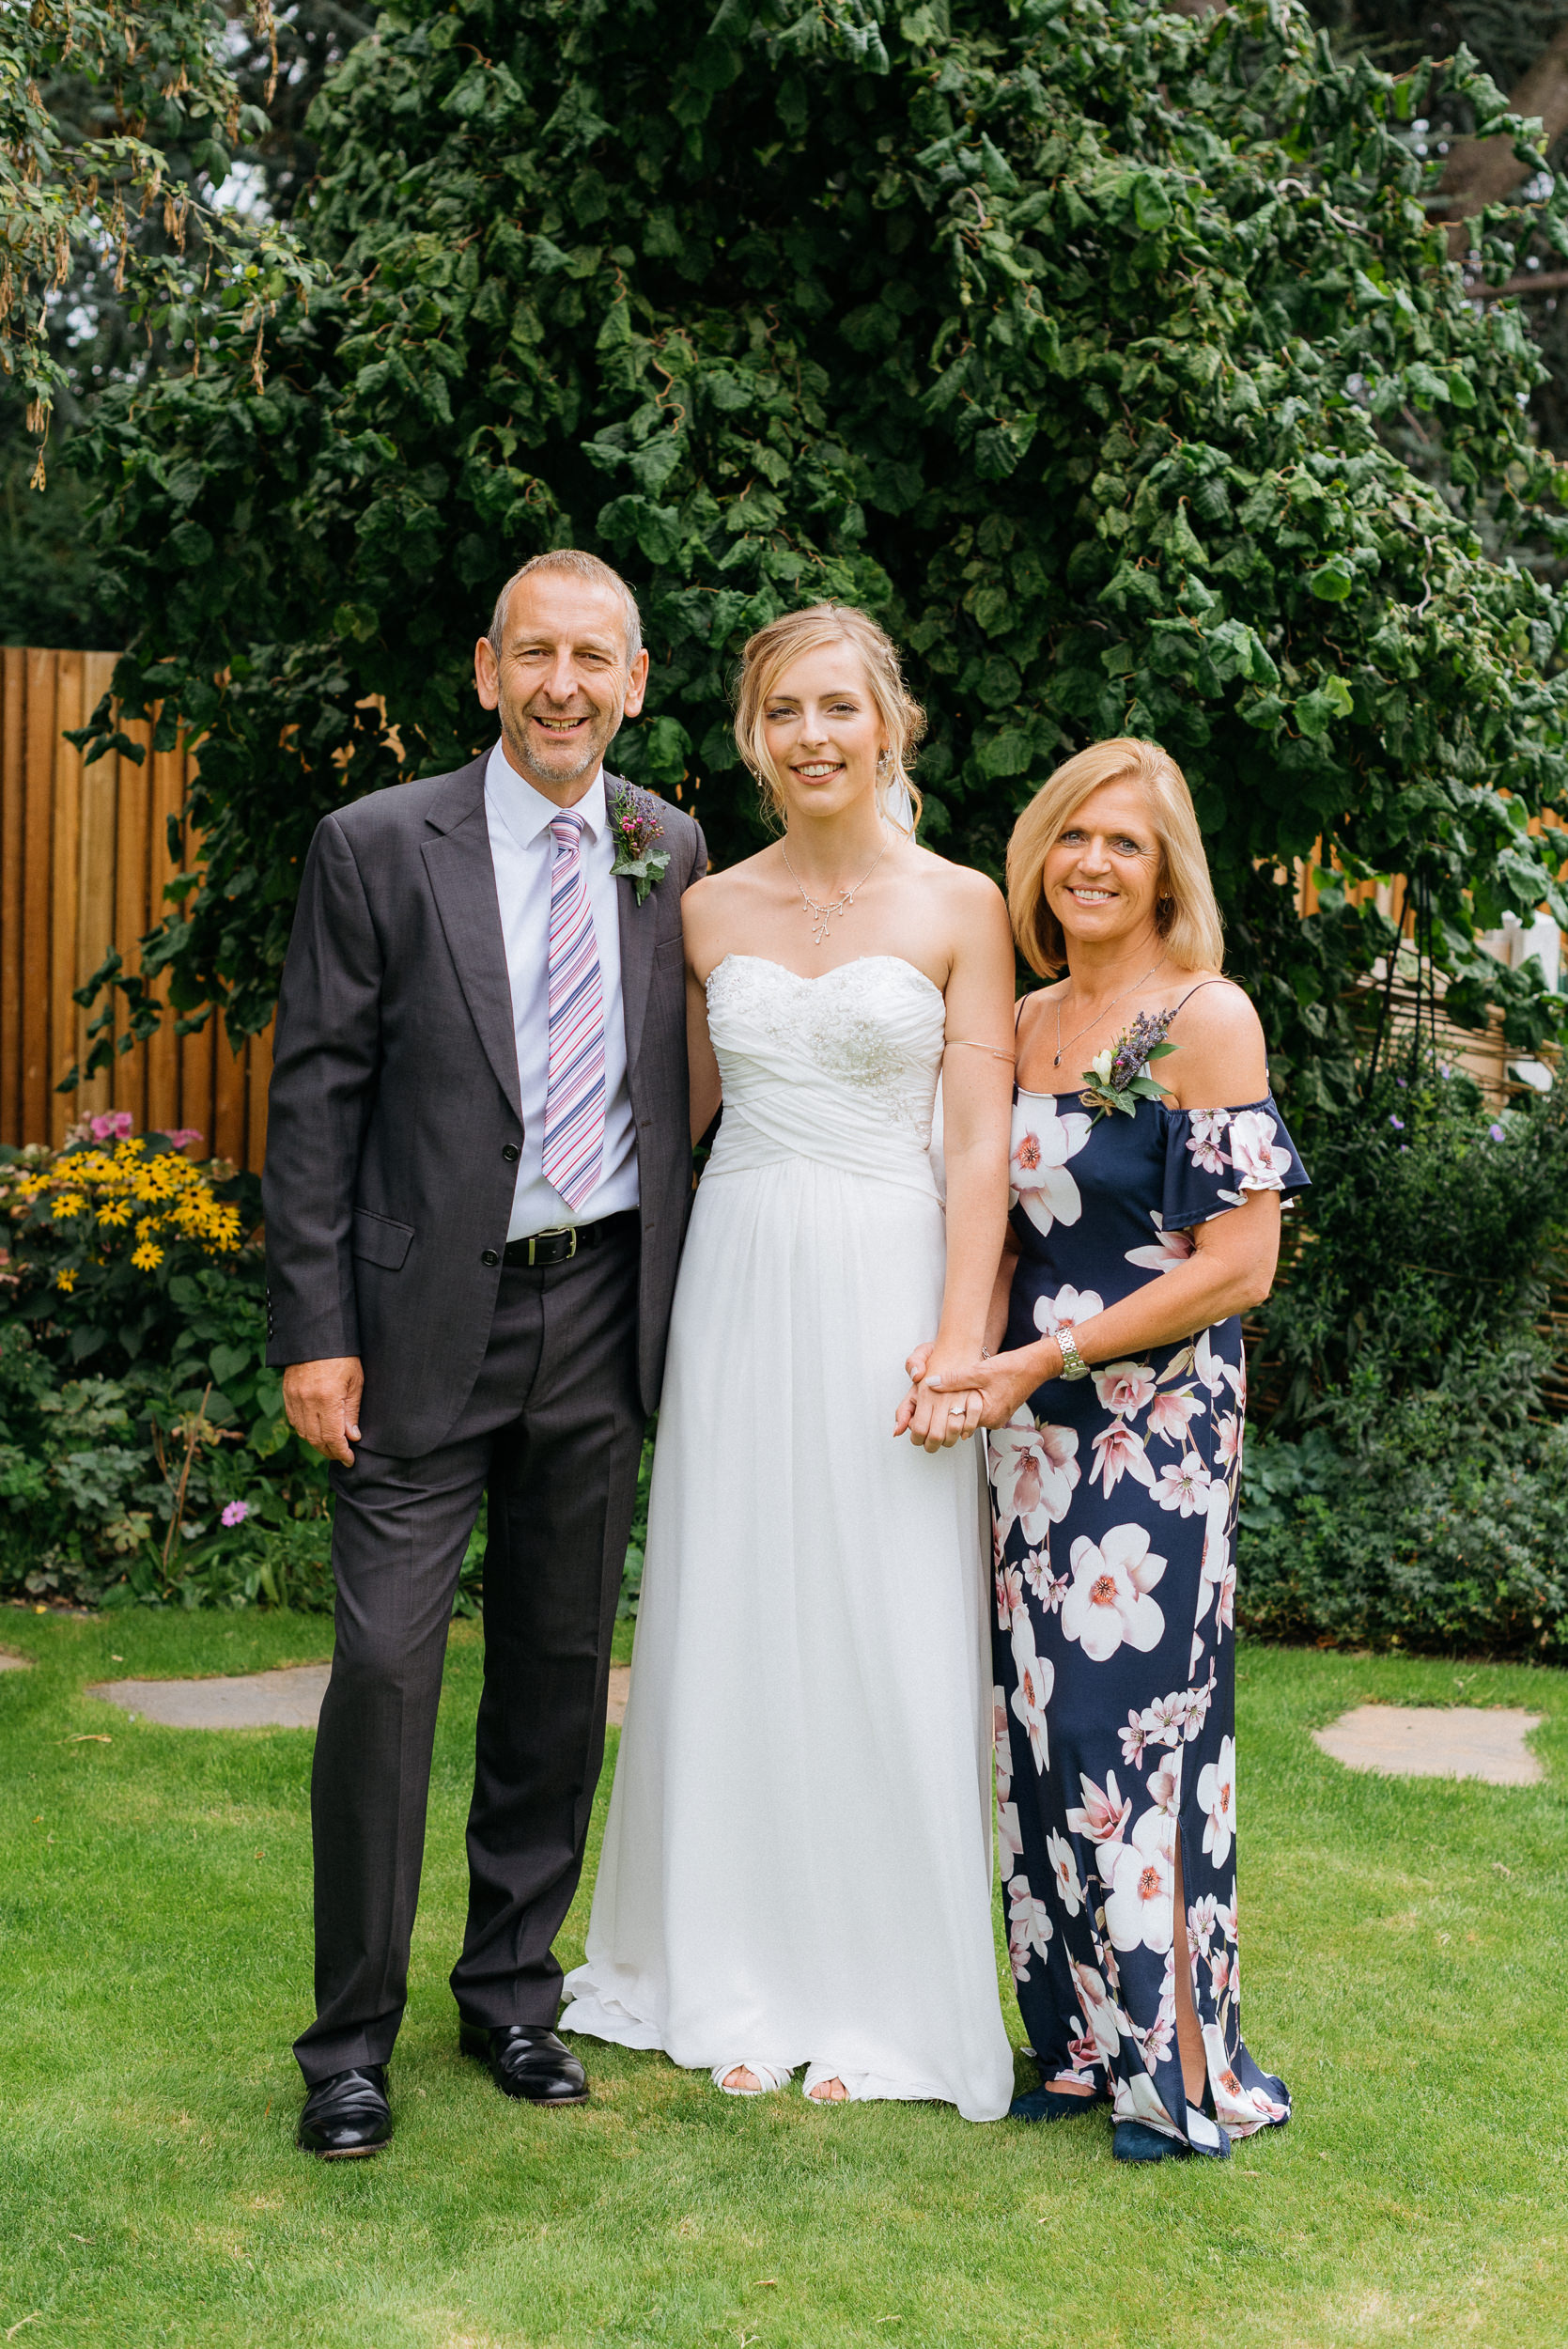 A photograph of the bride with her mother and father